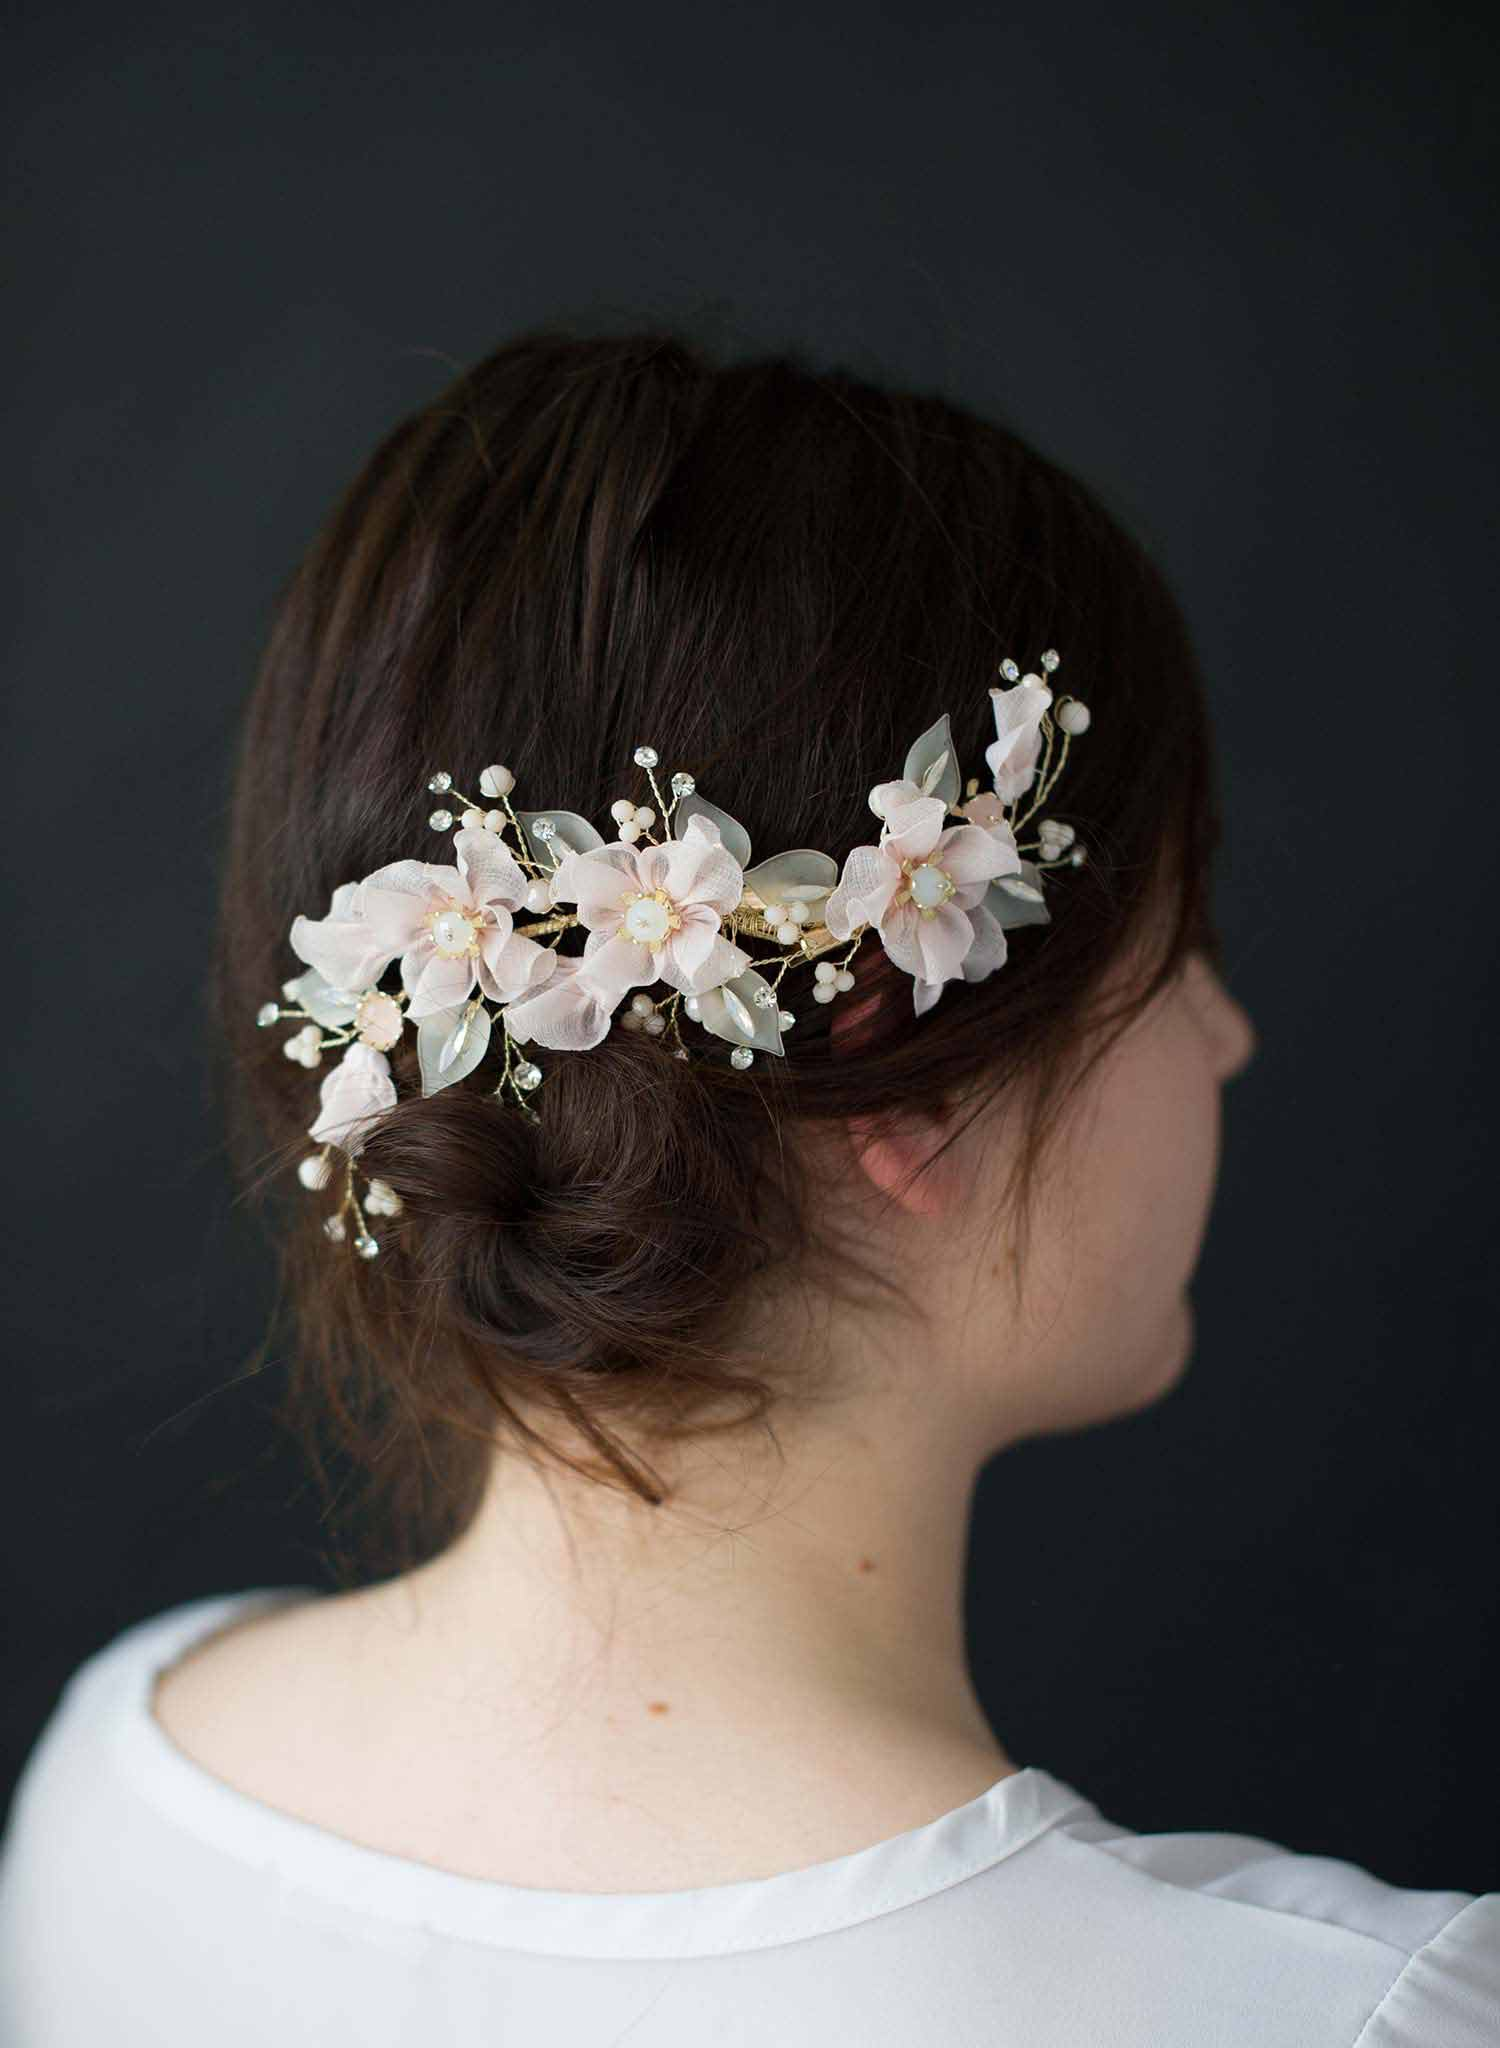 Soft cherry blossom hair clip set of 2  - Style #9014